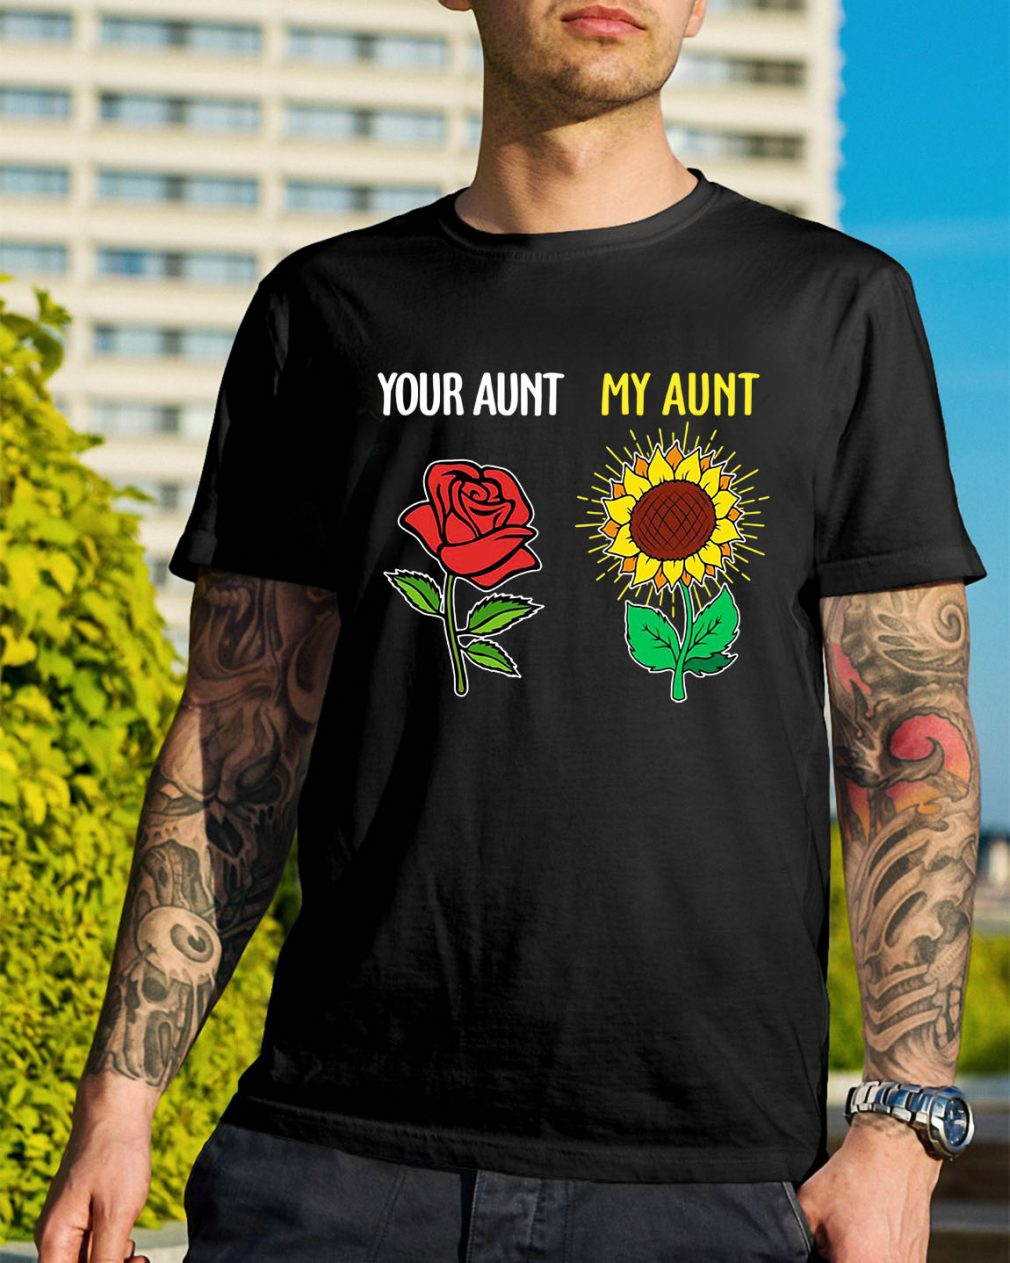 Your aunt my aunt rose sunflower shirt